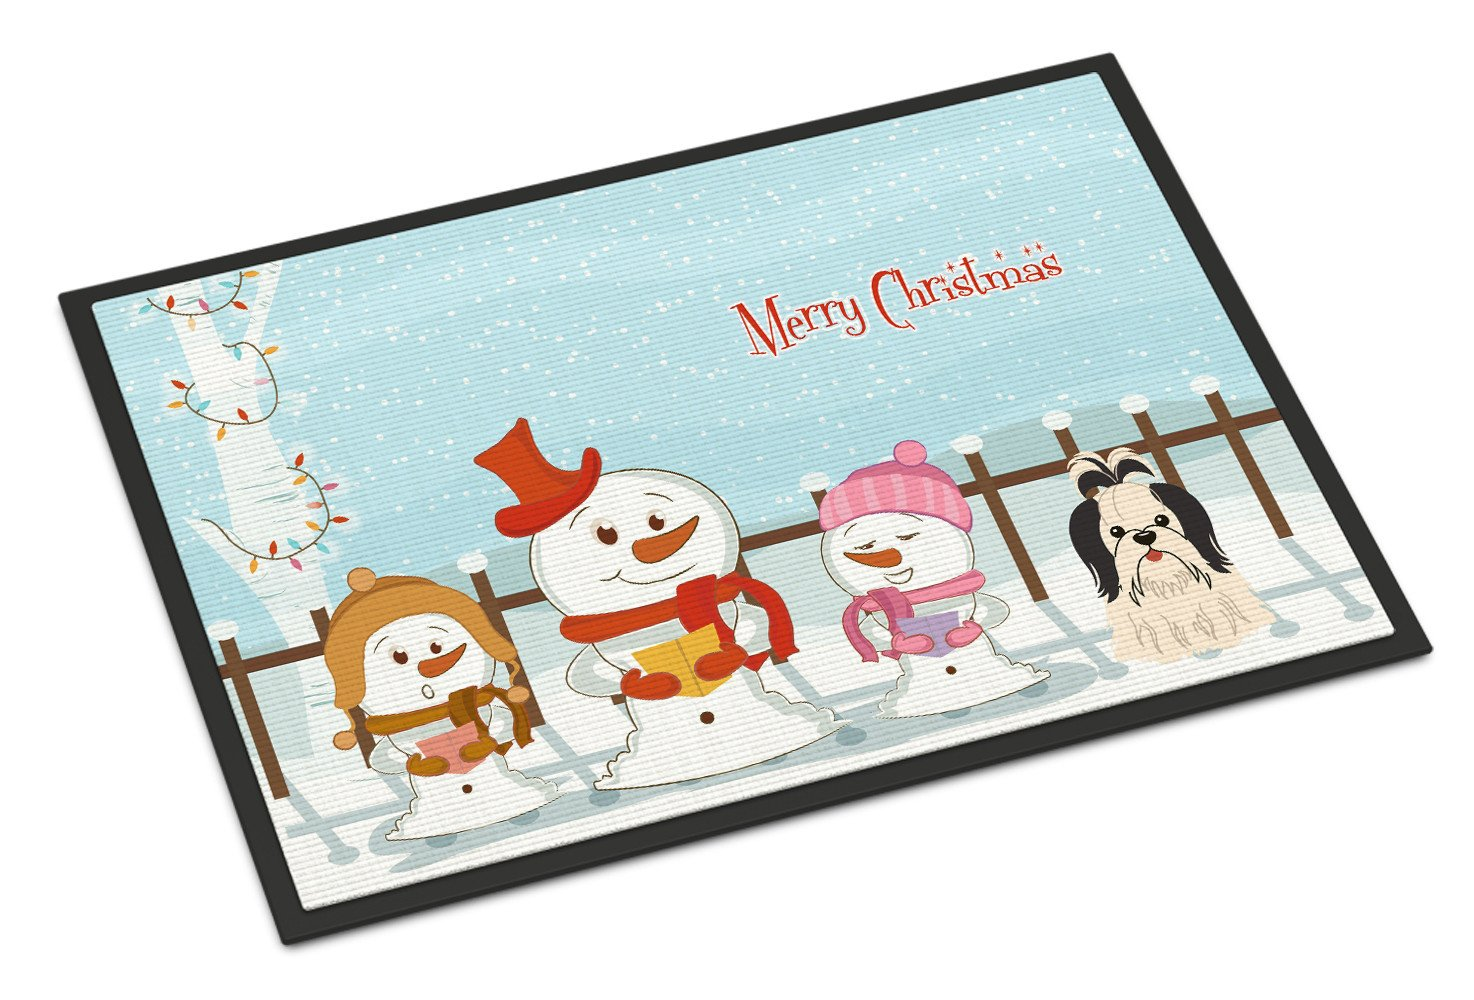 Merry Christmas Carolers Shih Tzu Black White Indoor or Outdoor Mat 24x36 BB2419JMAT - the-store.com